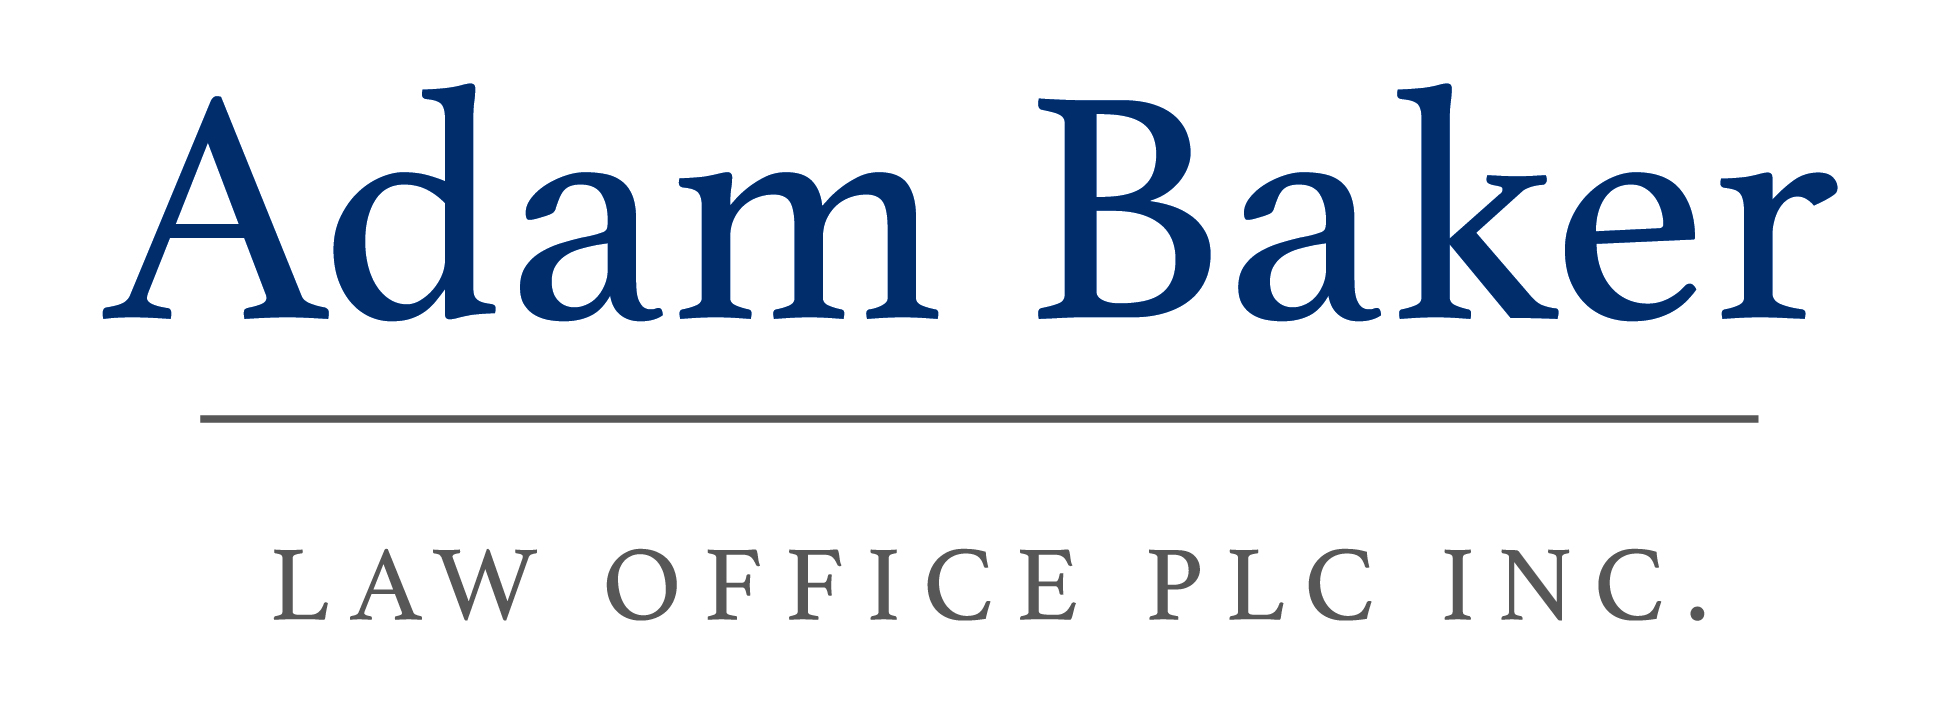 Adam Baker Law Office PLC Inc.